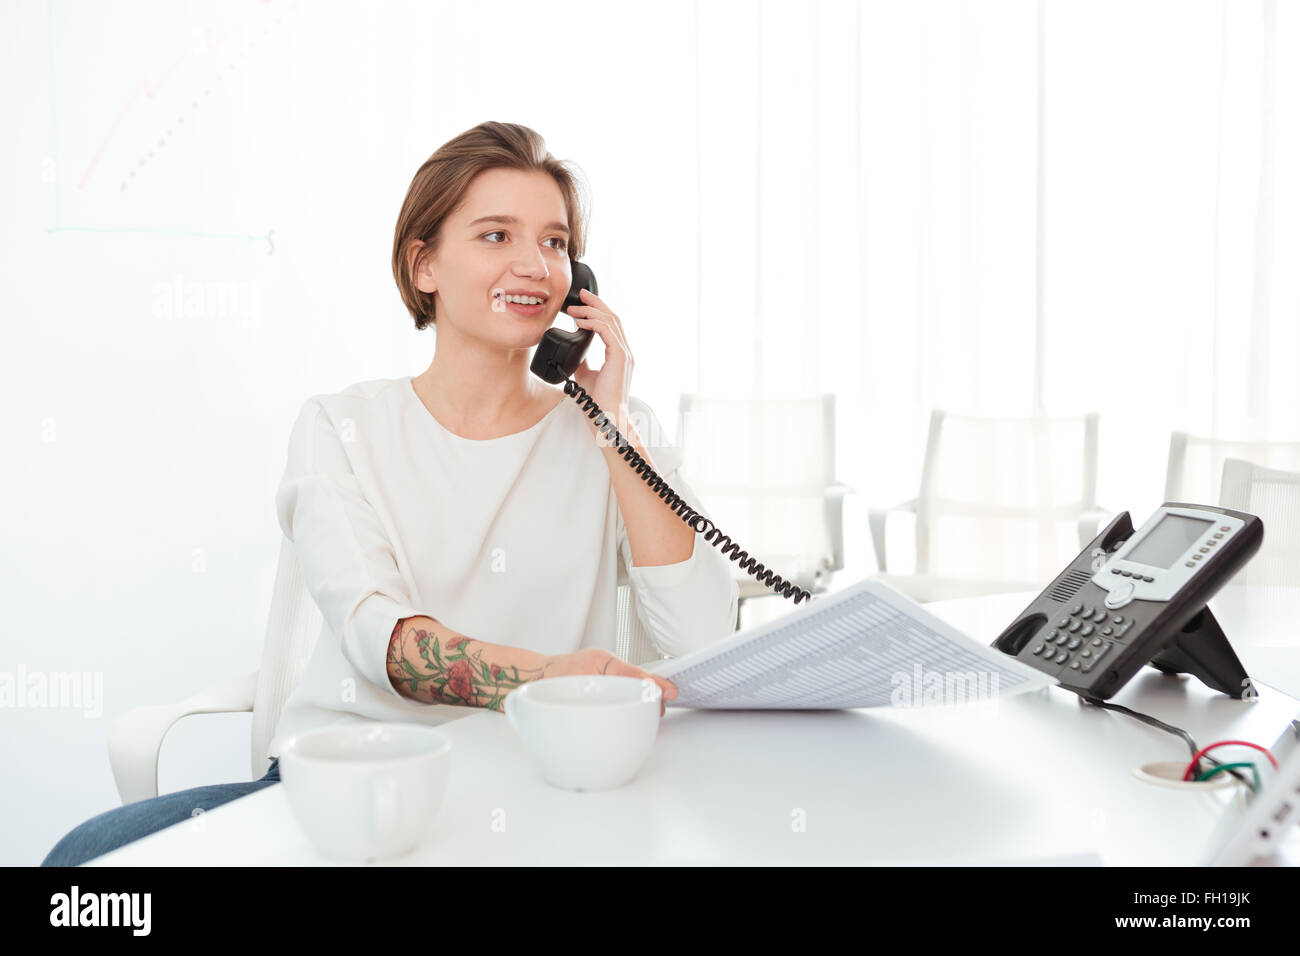 Smiling beautiful young woman sitting in office and talking on telephone - Stock Image